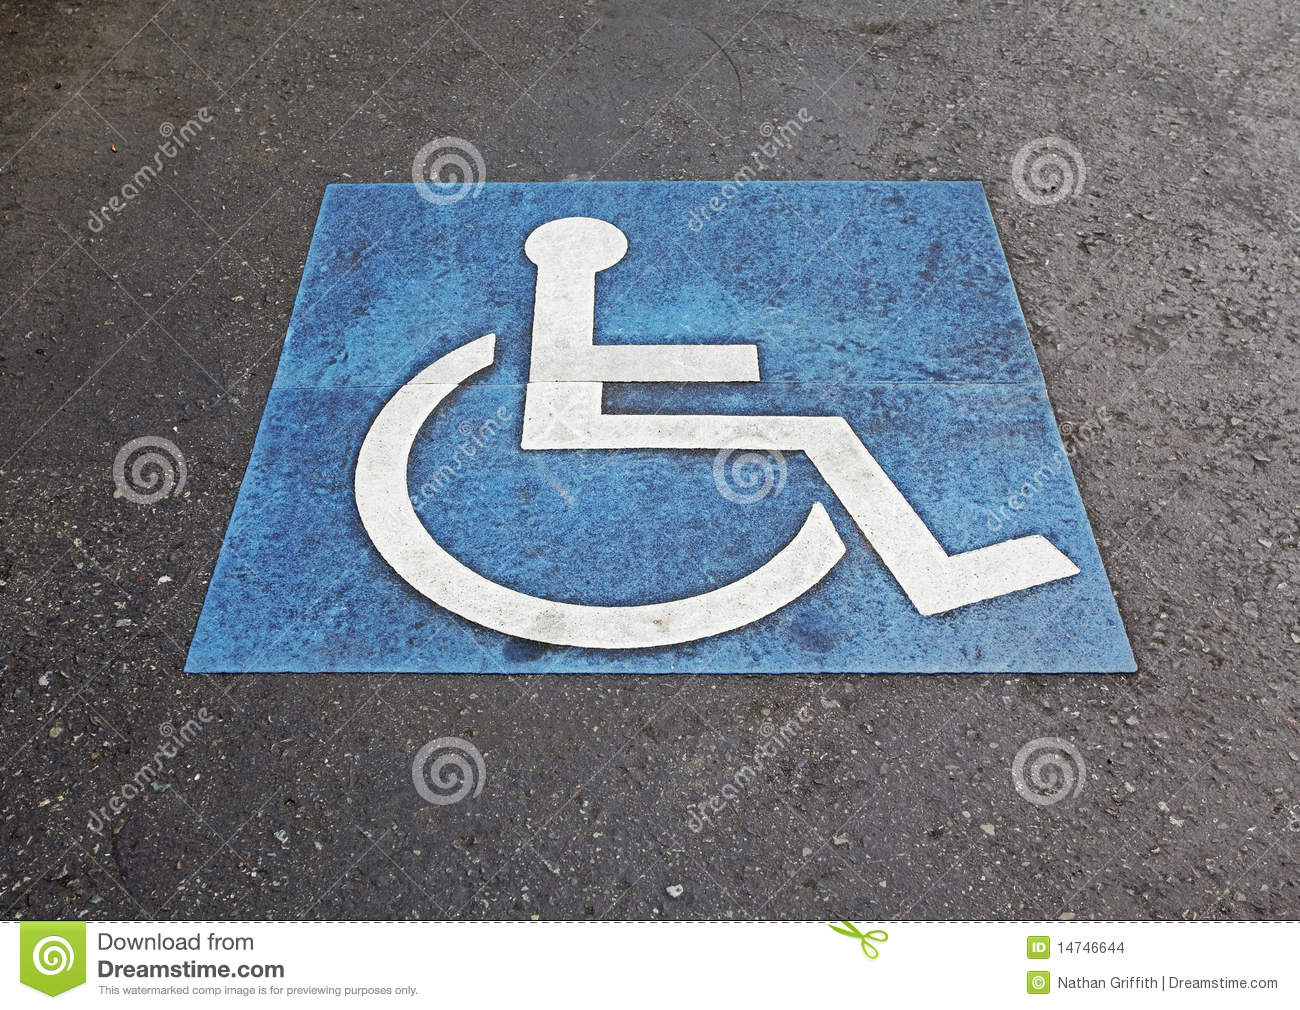 Symbol of handicapped parking space stock photo image of symbol of handicapped parking space buycottarizona